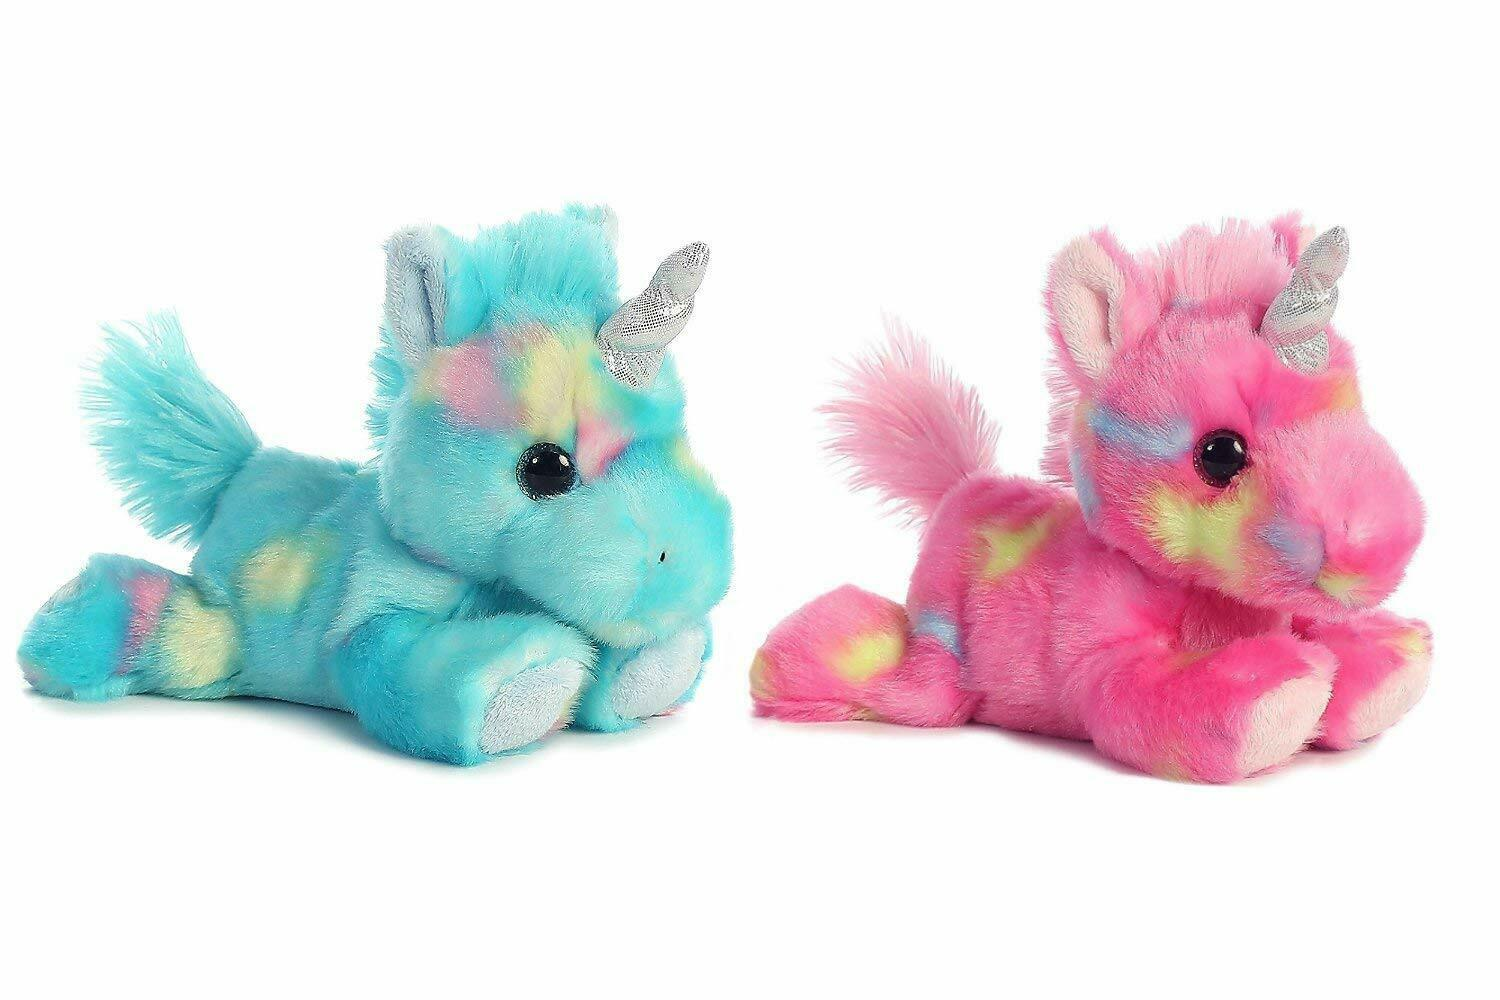 Primary image for Aurora Bundle of 2 Stuffed Beanbag Animals - Blueberry Ripple Unicorn & Jelly